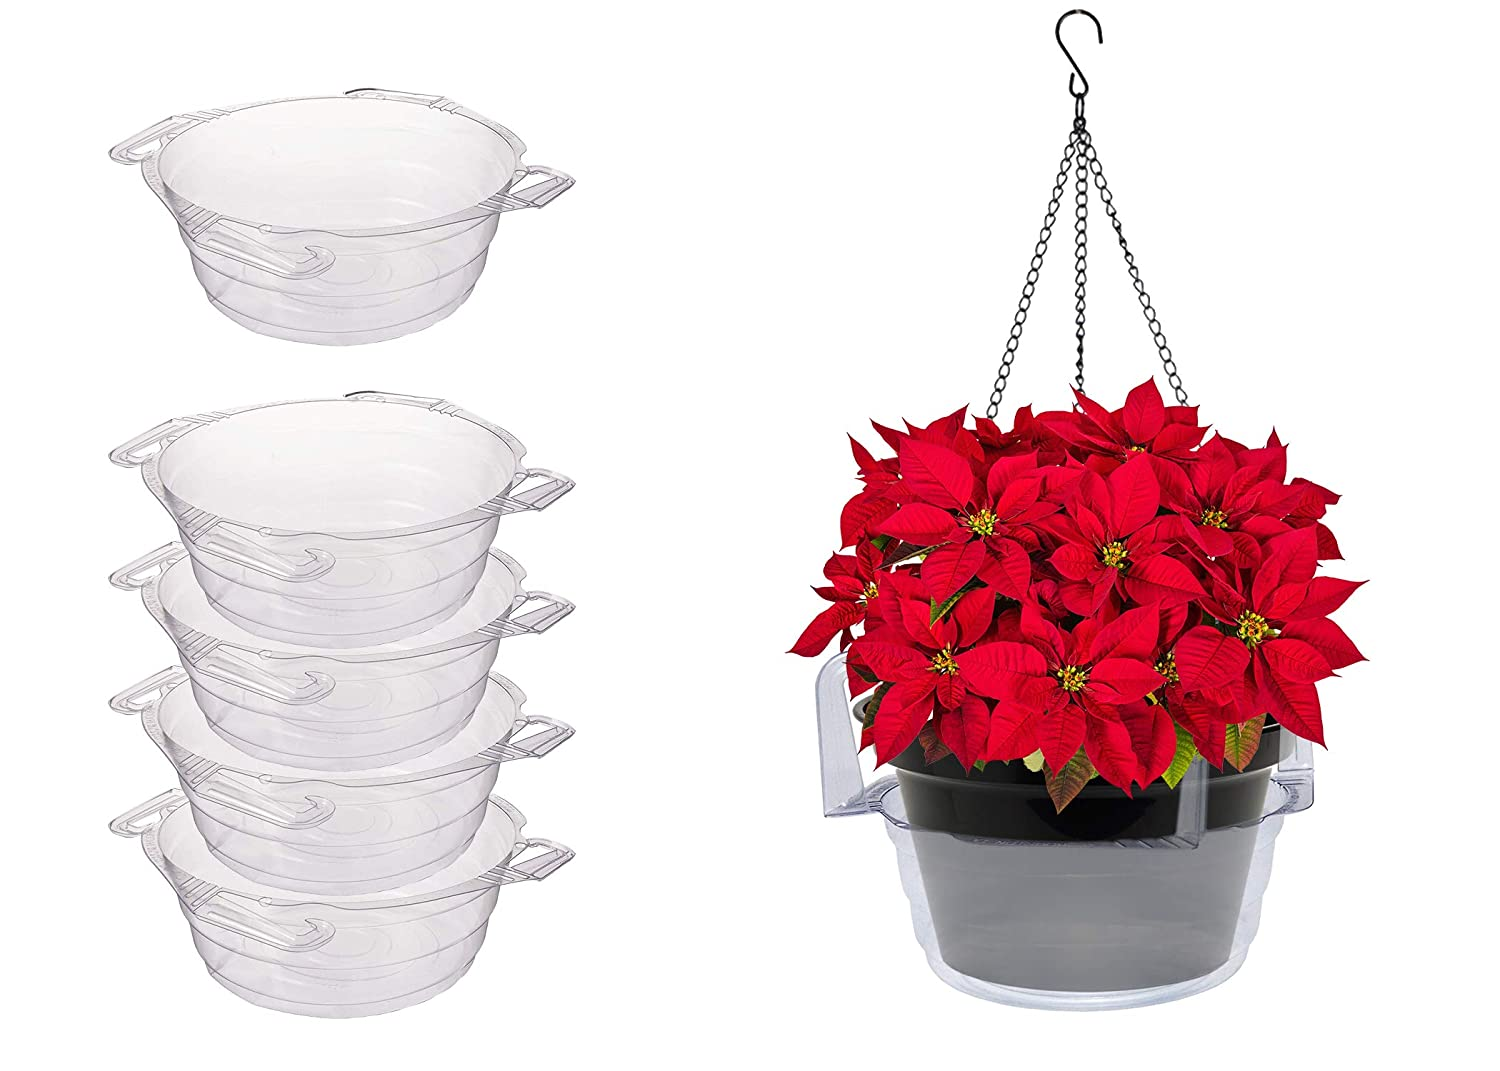 Curtis Wagner Plastics Plant Hanging Basket Drip Pans 5-pack – Clear, Round Diameter 12 top, 9 bottom, 3.75 depth Thin Plastic for Indoor or Garden – Clear, Black Terracotta